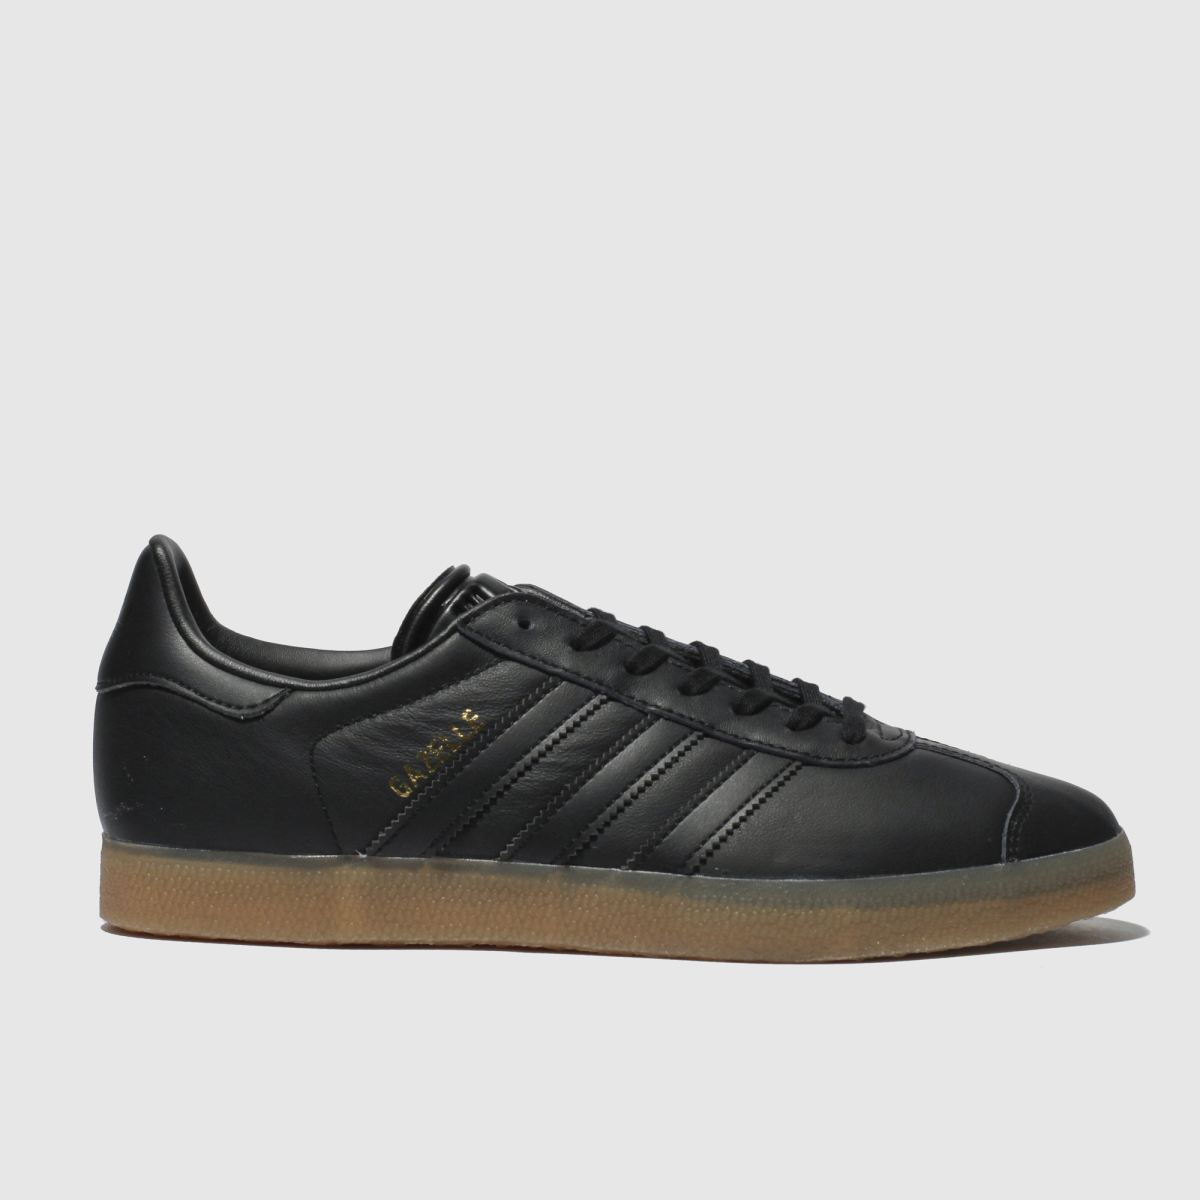 Adidas Black Gazelle Gum Trainers